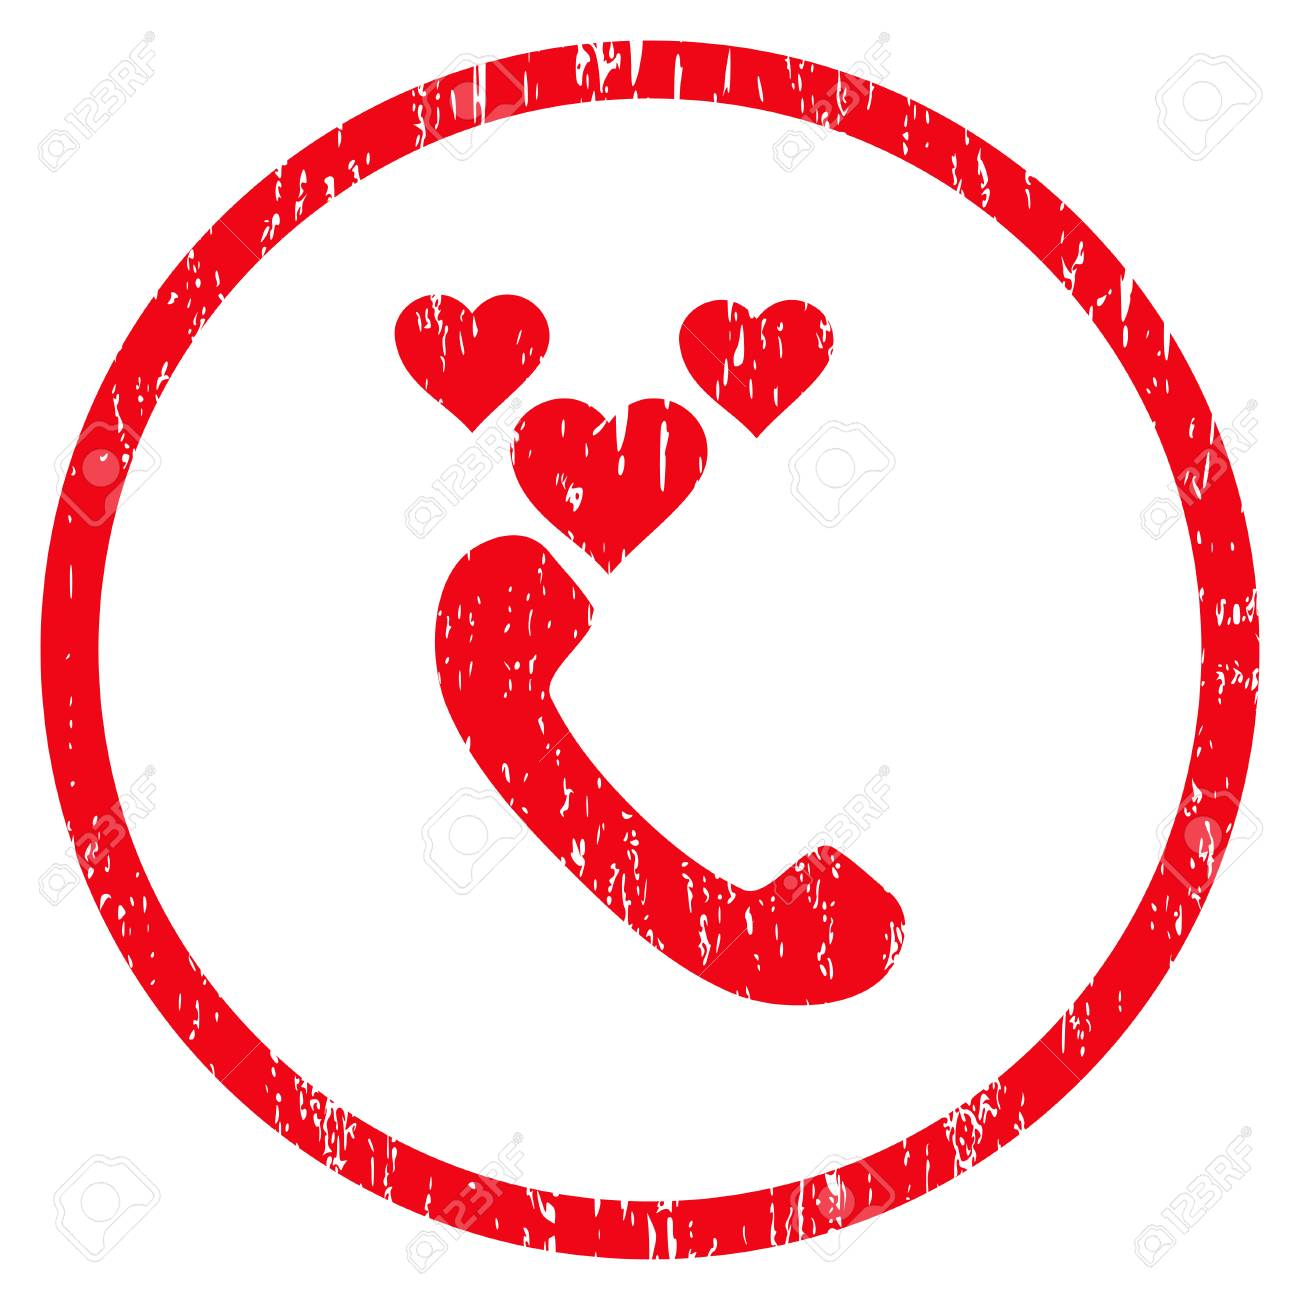 Love Phone Call Grainy Textured Icon For Overlay Watermark Stamps